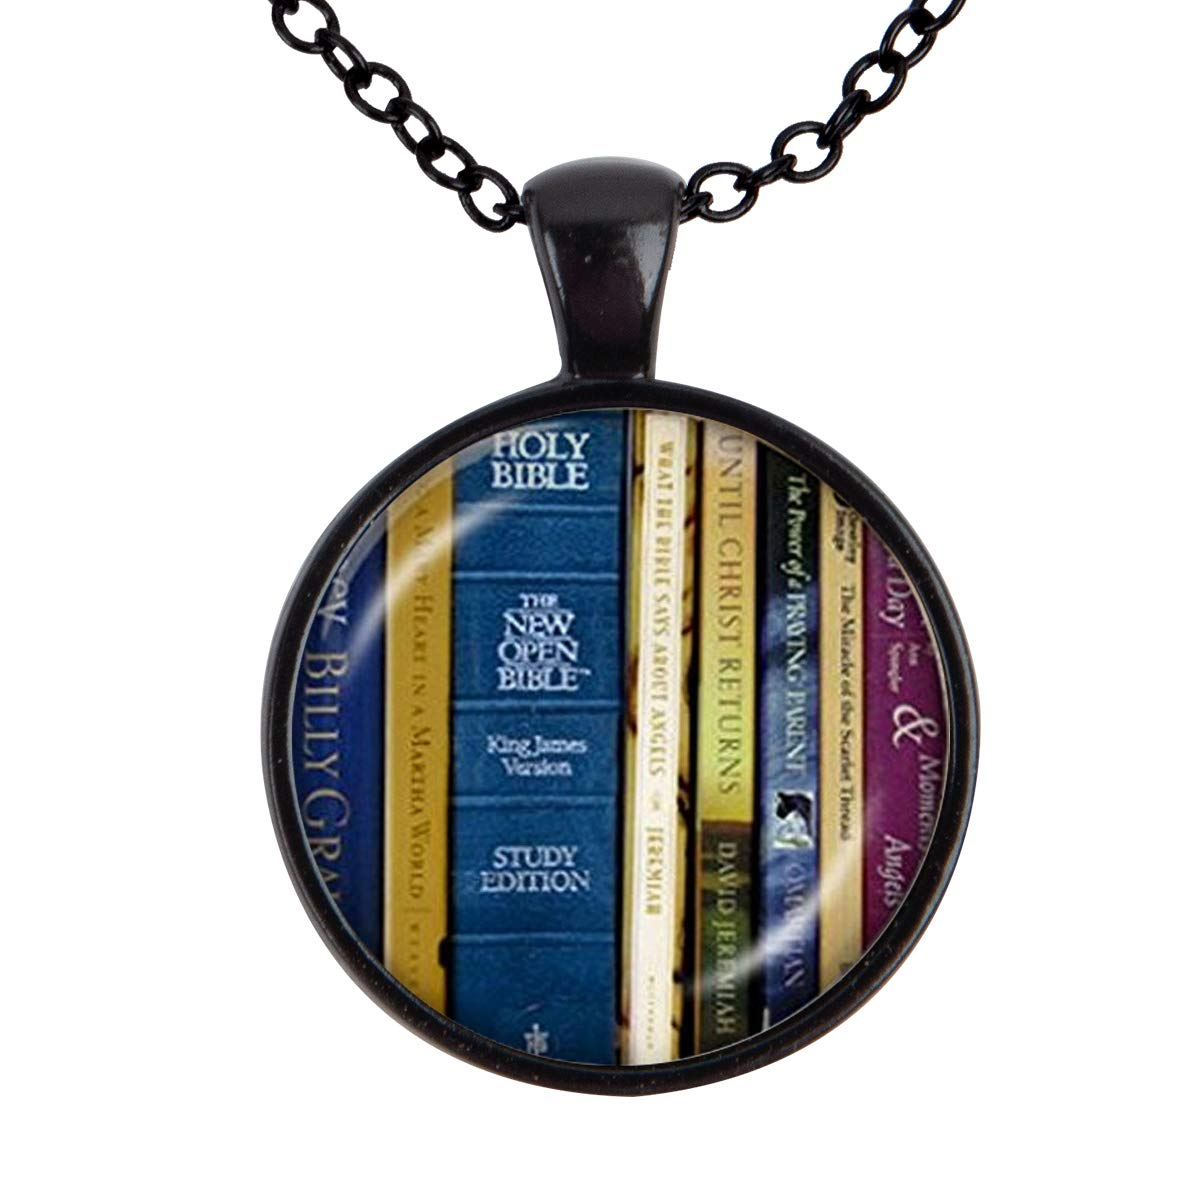 Family Decor Book Quote Library Pendant Necklace Cabochon Glass Vintage Bronze Chain Necklace Jewelry Handmade